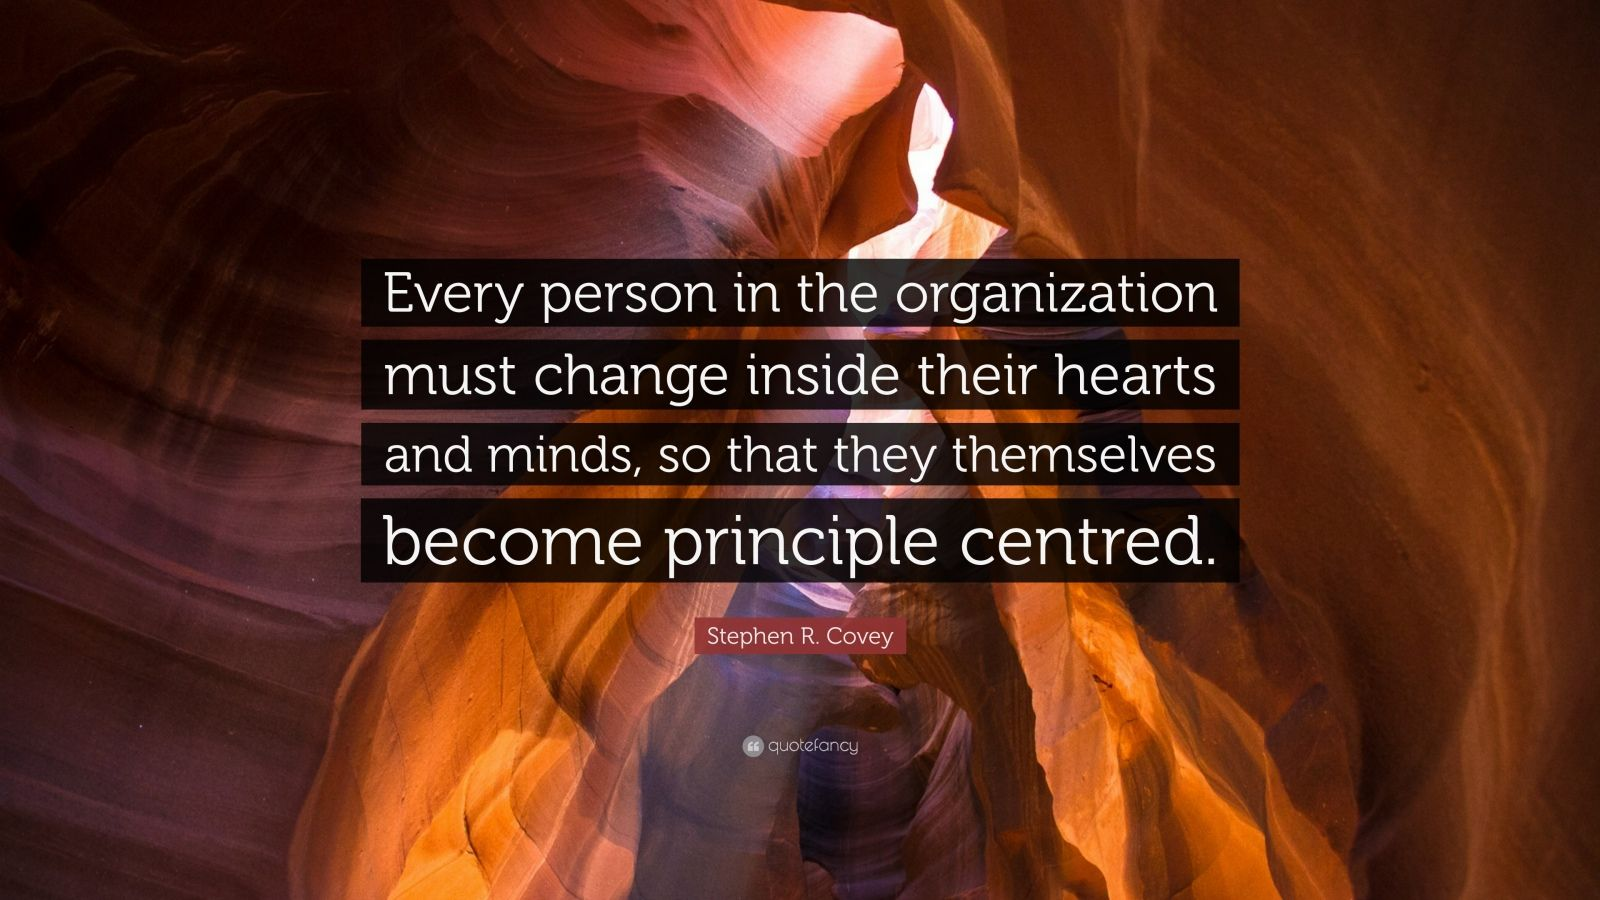 """Stephen R. Covey Quote: """"Every person in the organization must change inside their hearts and minds, so that they themselves become principle centred."""""""